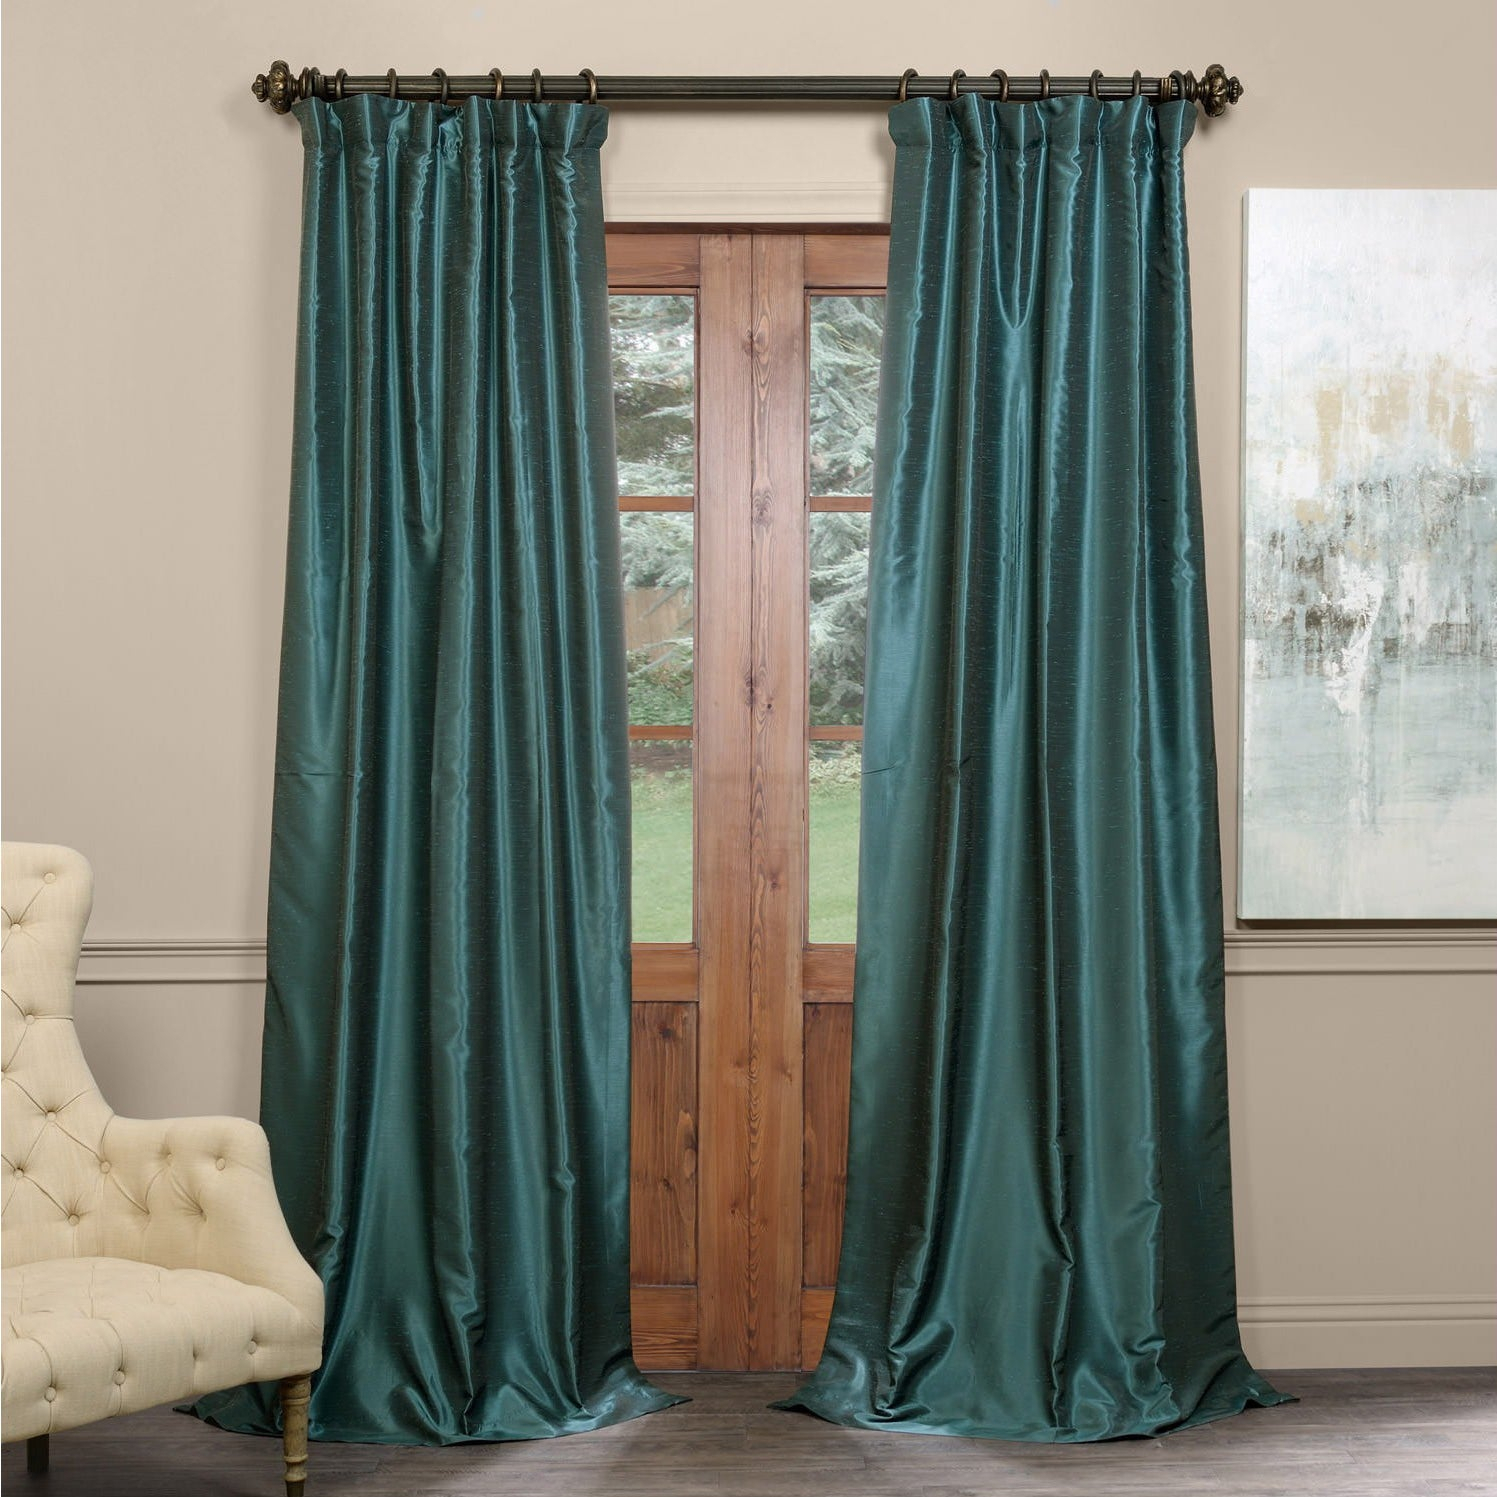 Exclusive Fabrics True Blackout Vintage Textured Faux Dupioni Silk Curtain Panel With True Blackout Vintage Textured Faux Silk Curtain Panels (View 4 of 30)